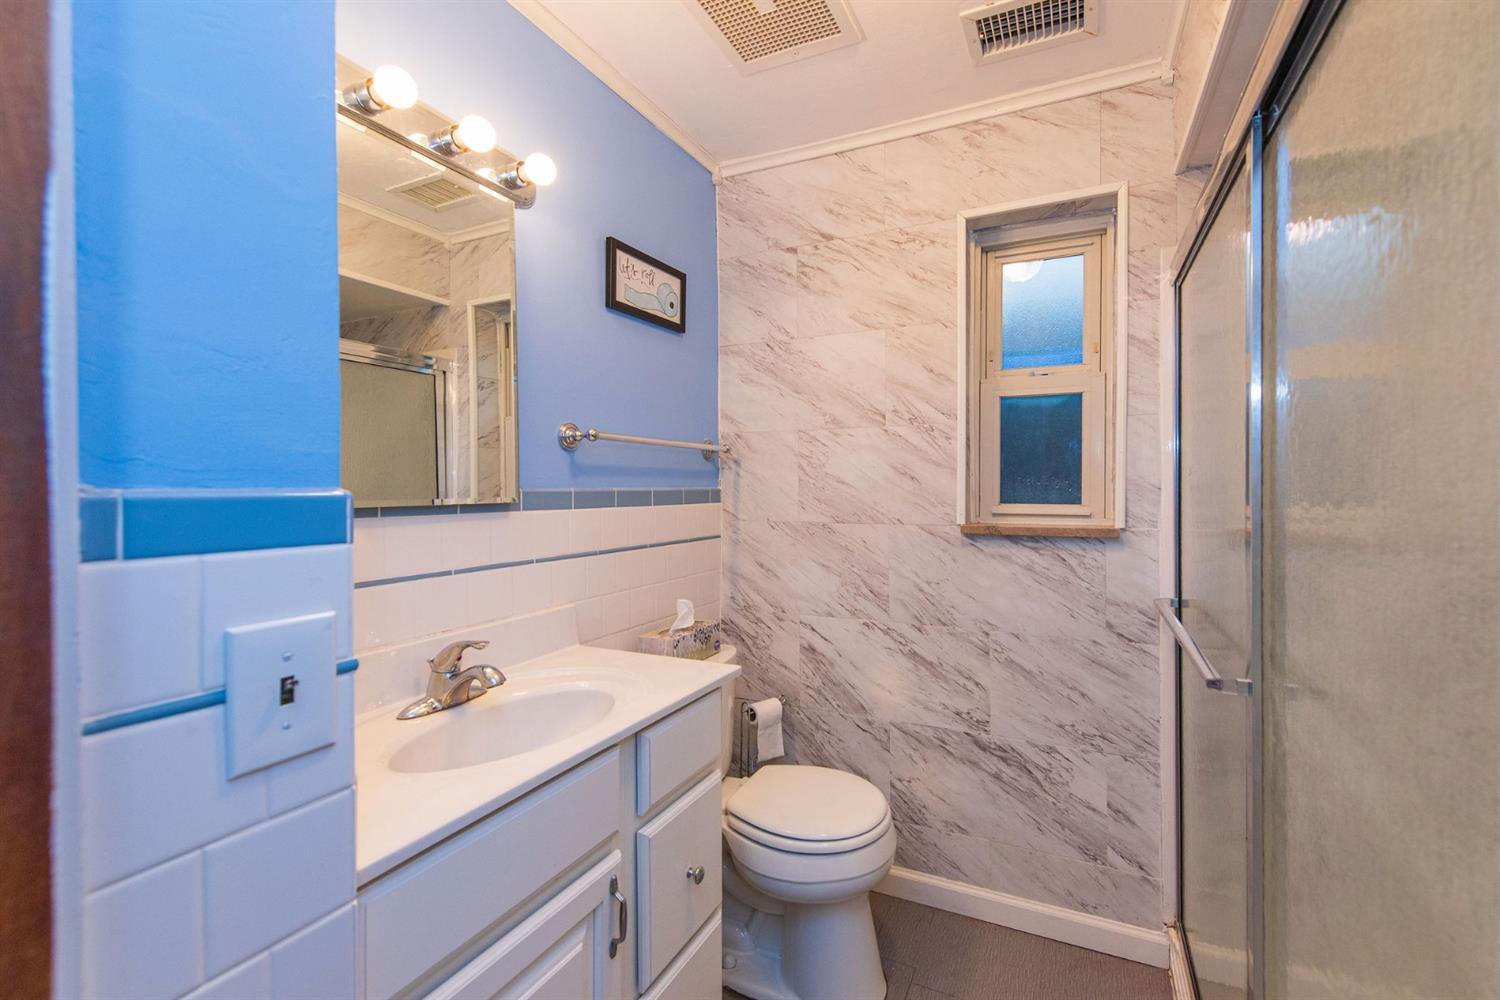 Updated bathroom with linen closet. Standup shower with attached grab bars and seat.